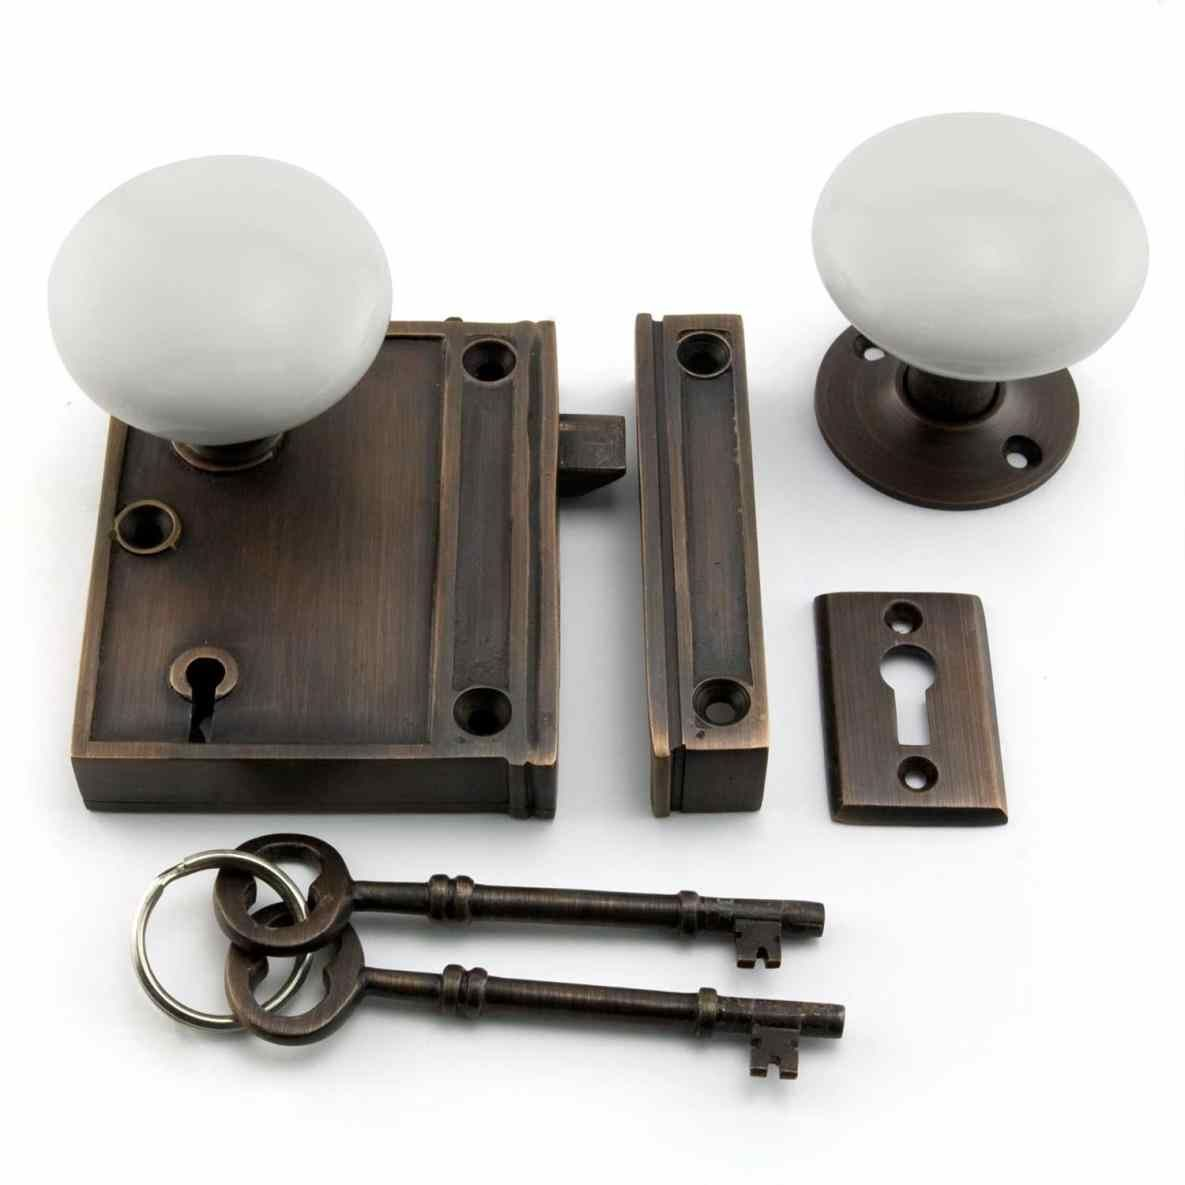 The Historic Pattern Makes This Vertical Rim Lock Set With Porcelain Knobs  Appropriate For Restorations And As Replacement Kits, Or Add To A New Home  For A ...